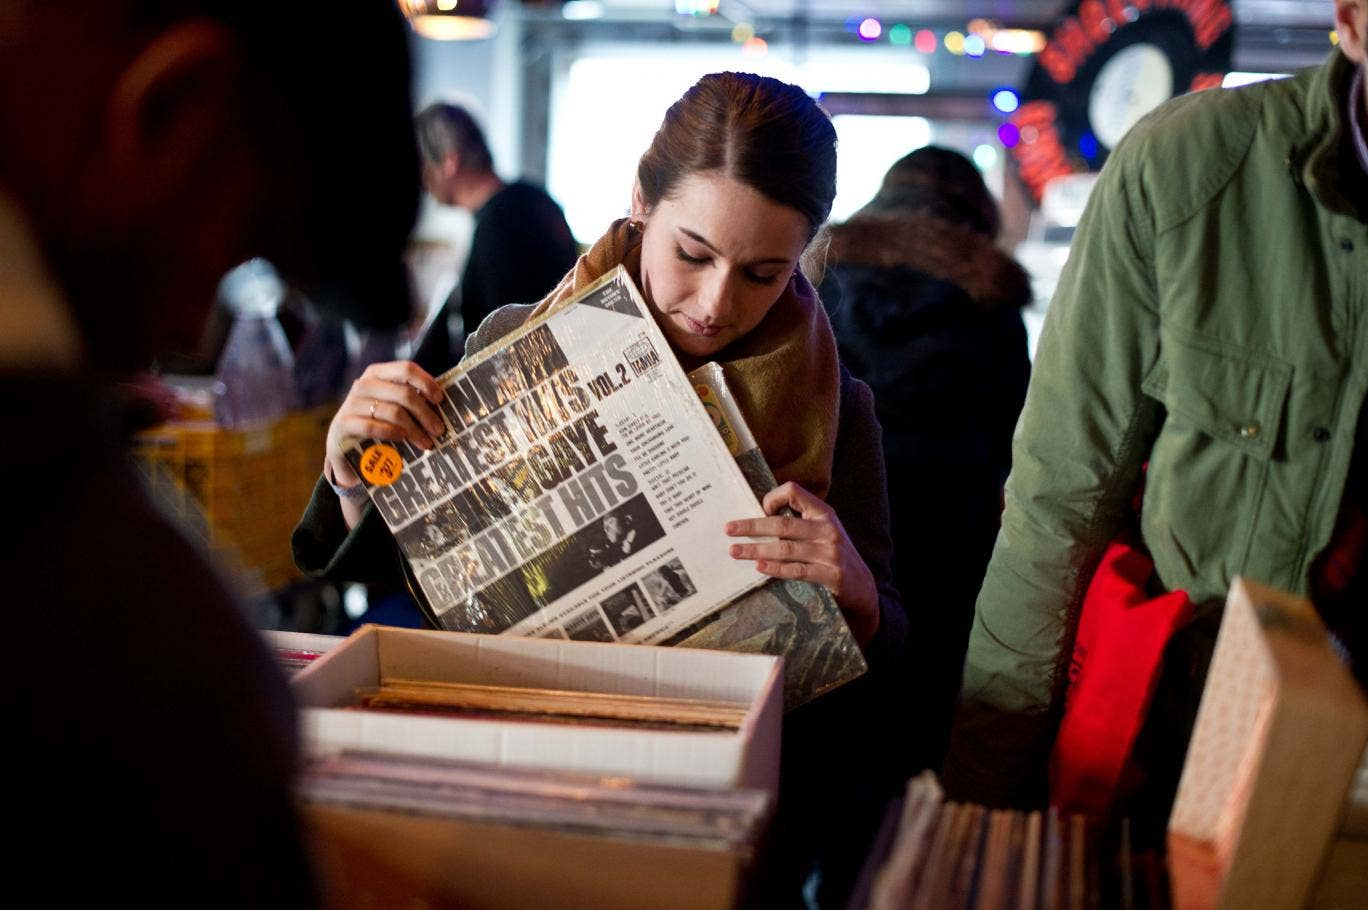 Record Store Day, held in April, contributed to an increase in sales at independent record stores in Britain